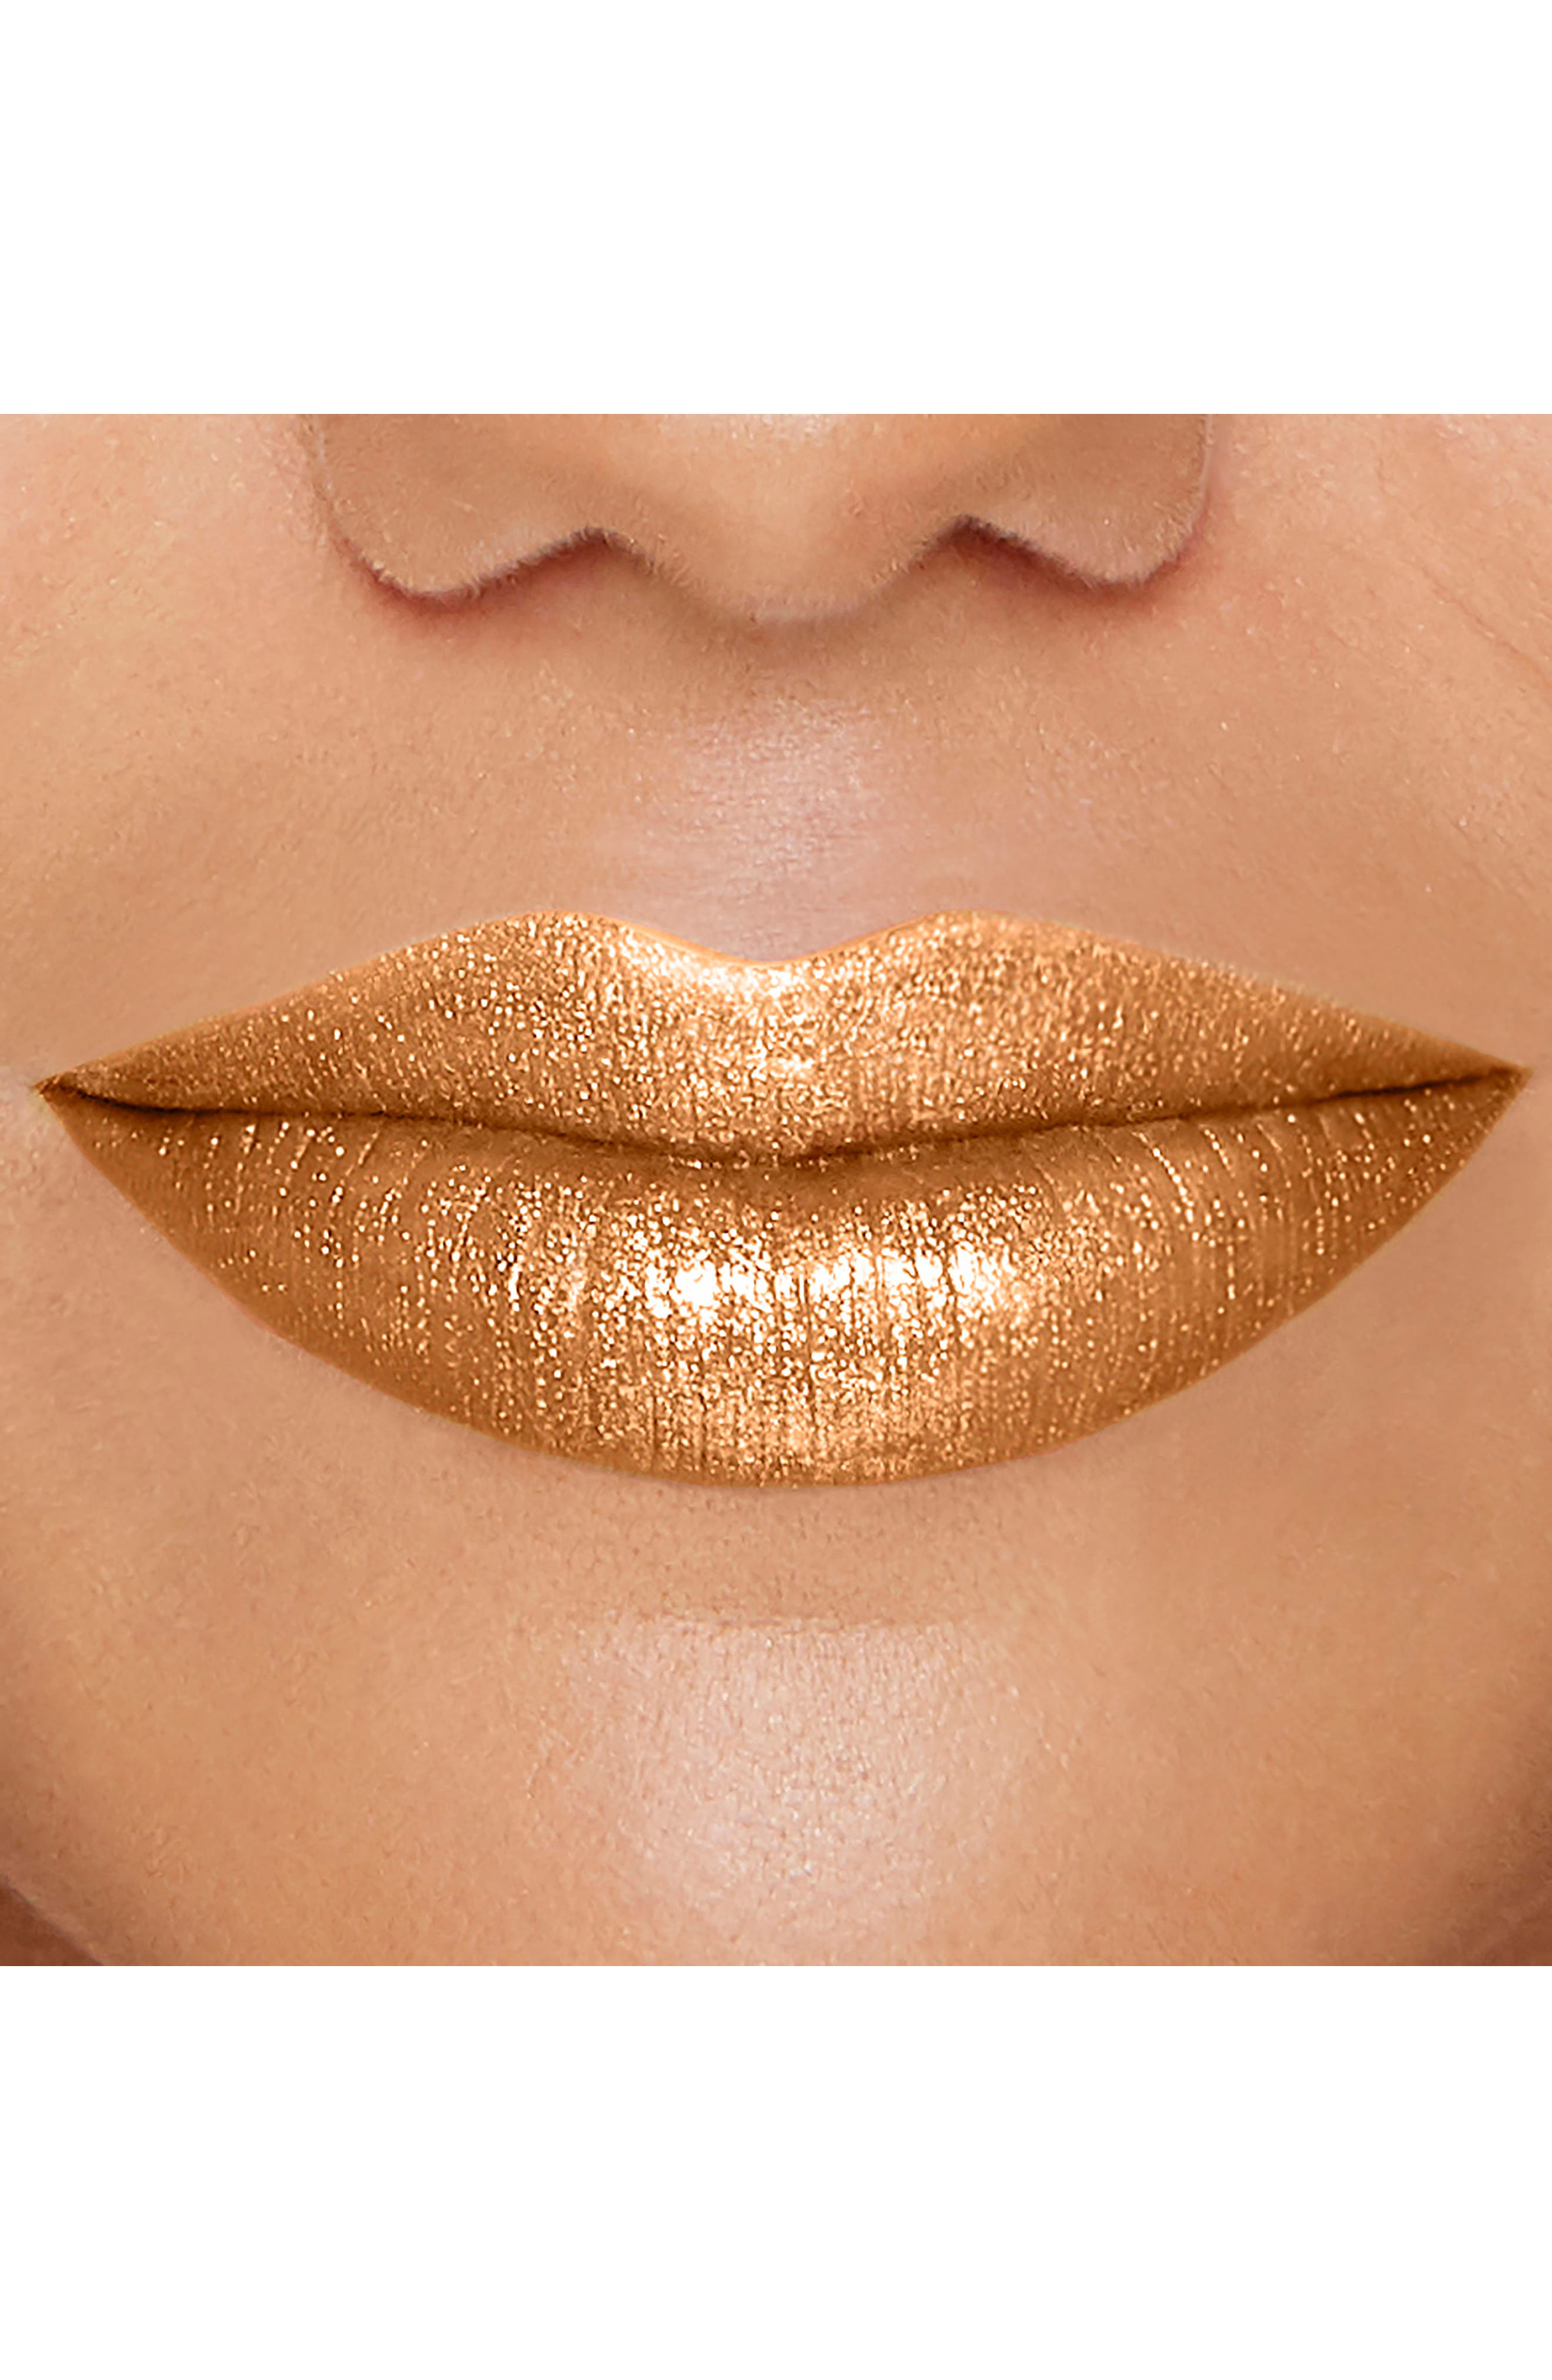 Melted Gold Liquified Gold Lip Gloss,                             Alternate thumbnail 7, color,                             GOLD